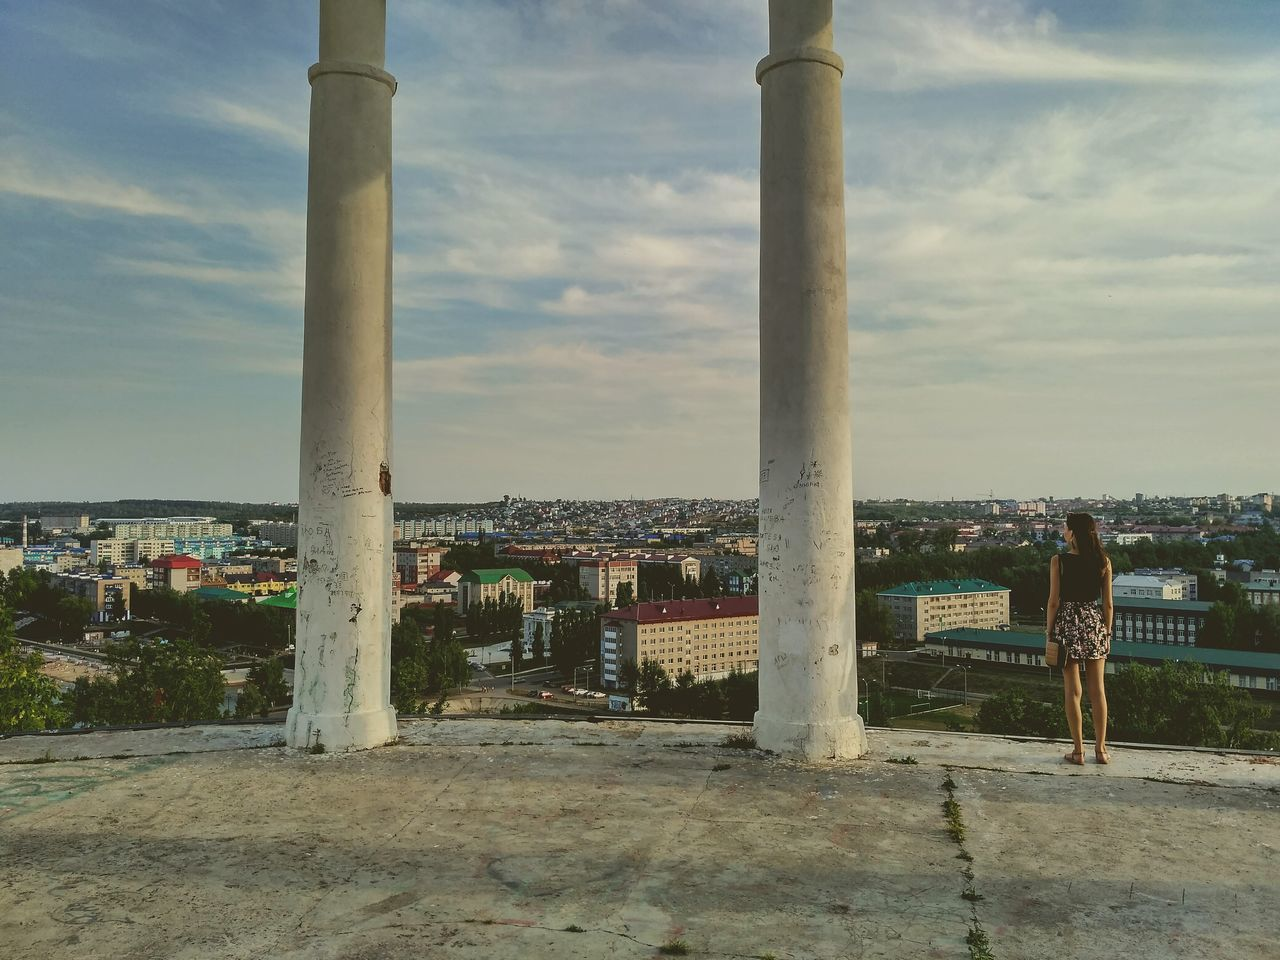 Rear View Full Length Of Woman Standing By Column Against Leninogorsk